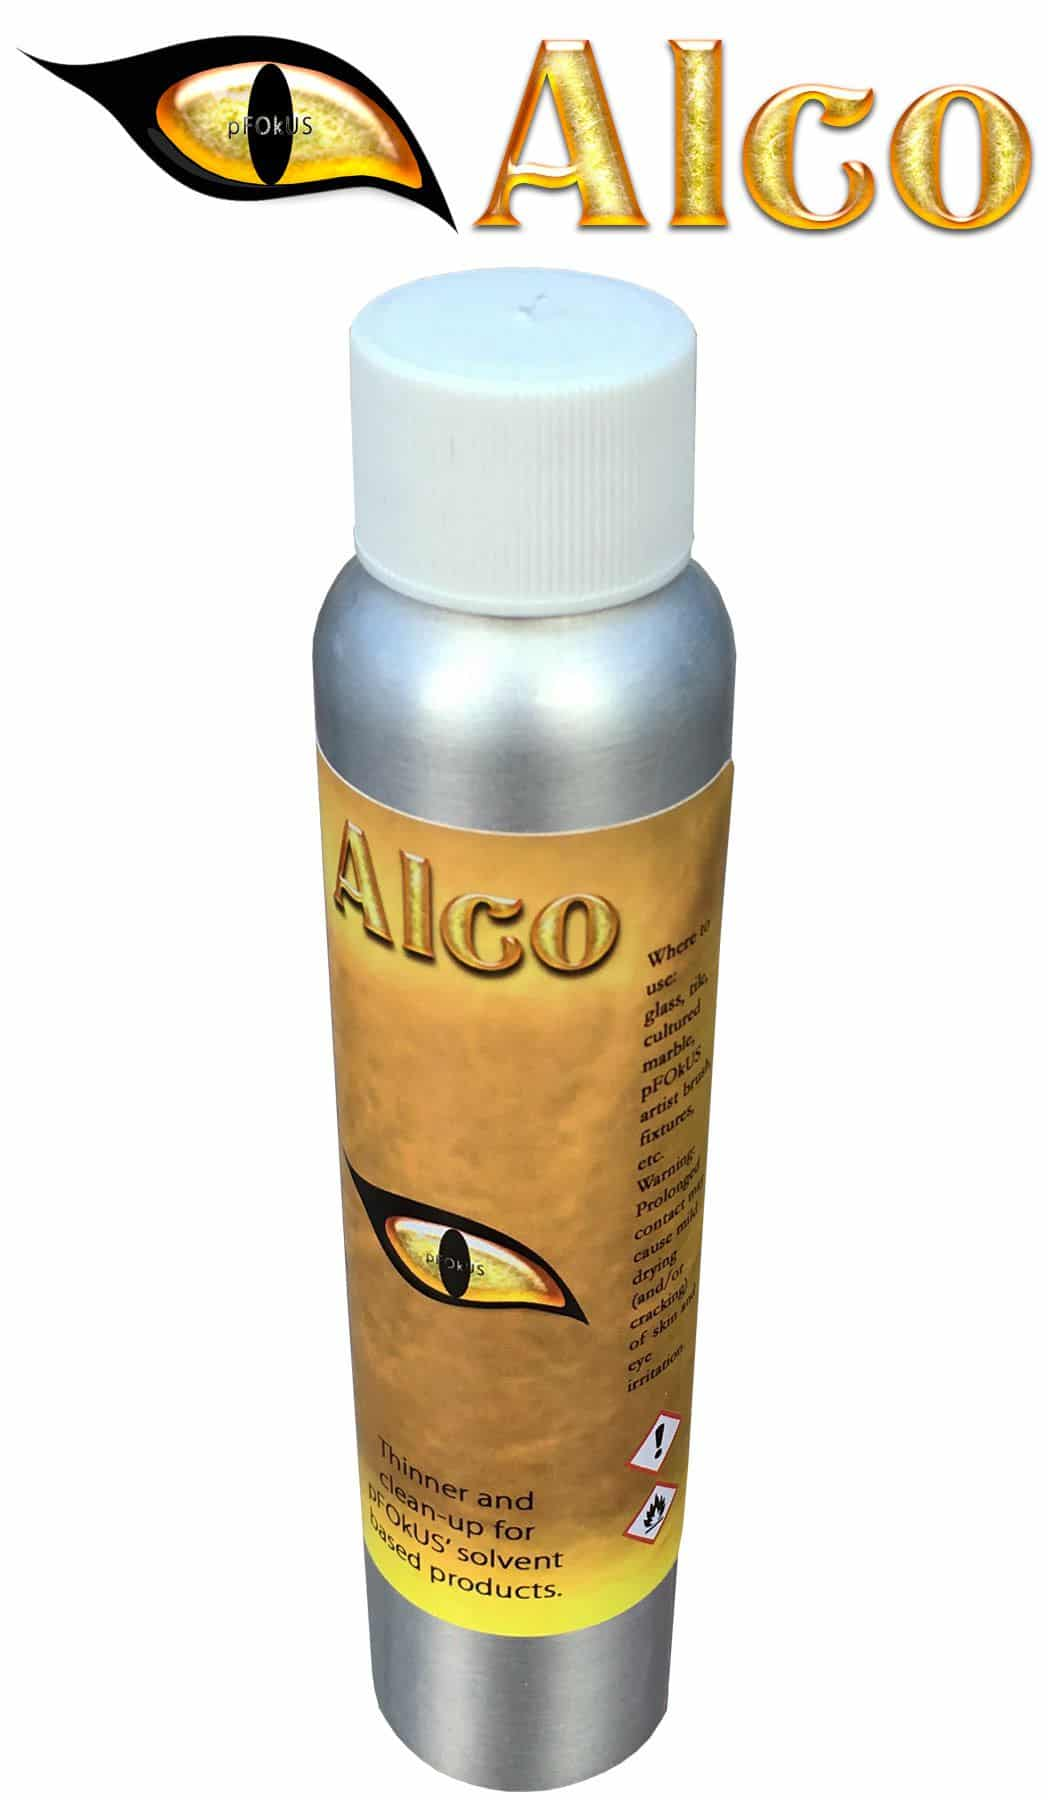 Alco Solvent Clean up Thinner